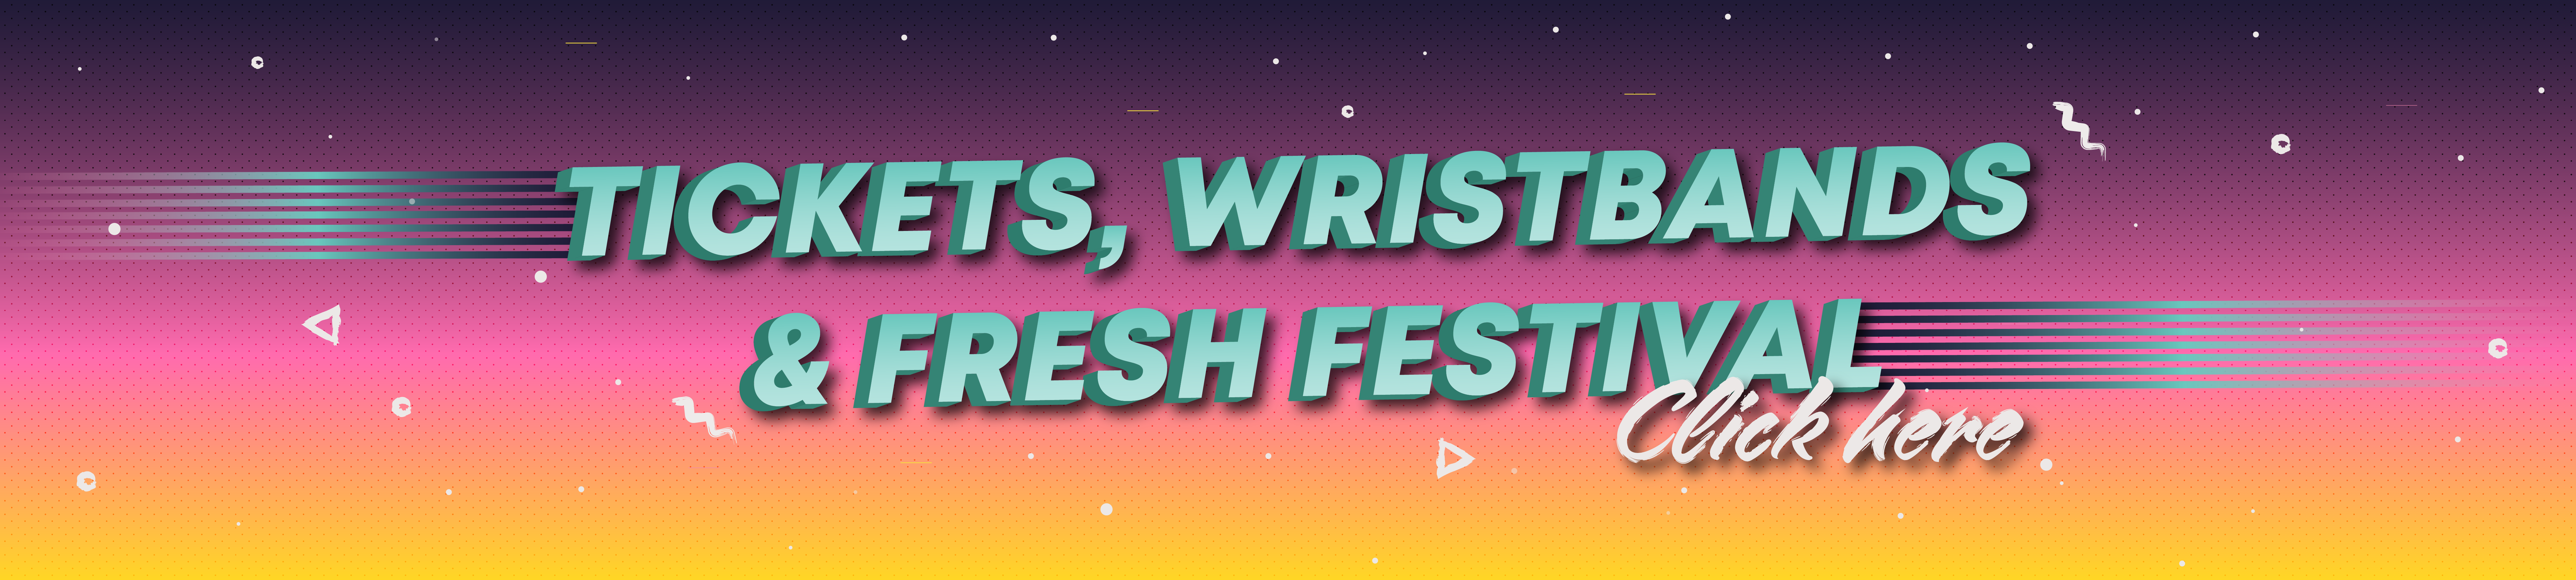 For tickets, wristbands and Fresh Festival - Click Here.